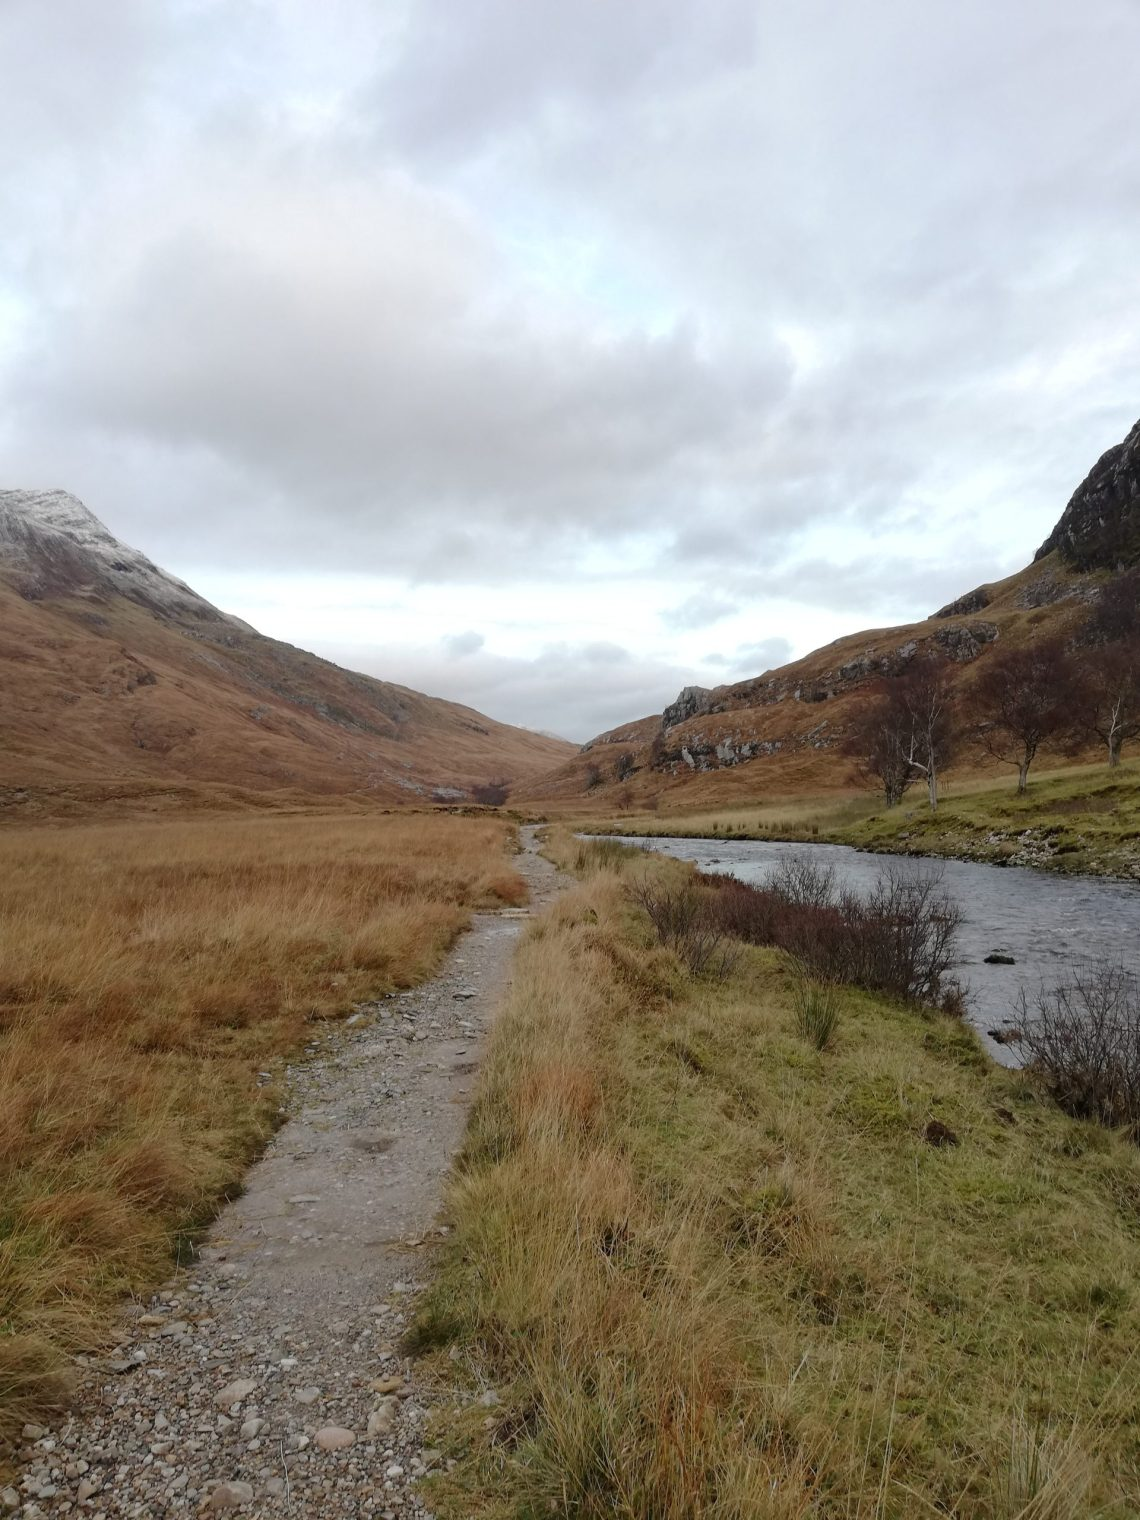 Navigation practice in Glen Nevis with the footpath running along the river down the glen framed by hillsides on both sides.